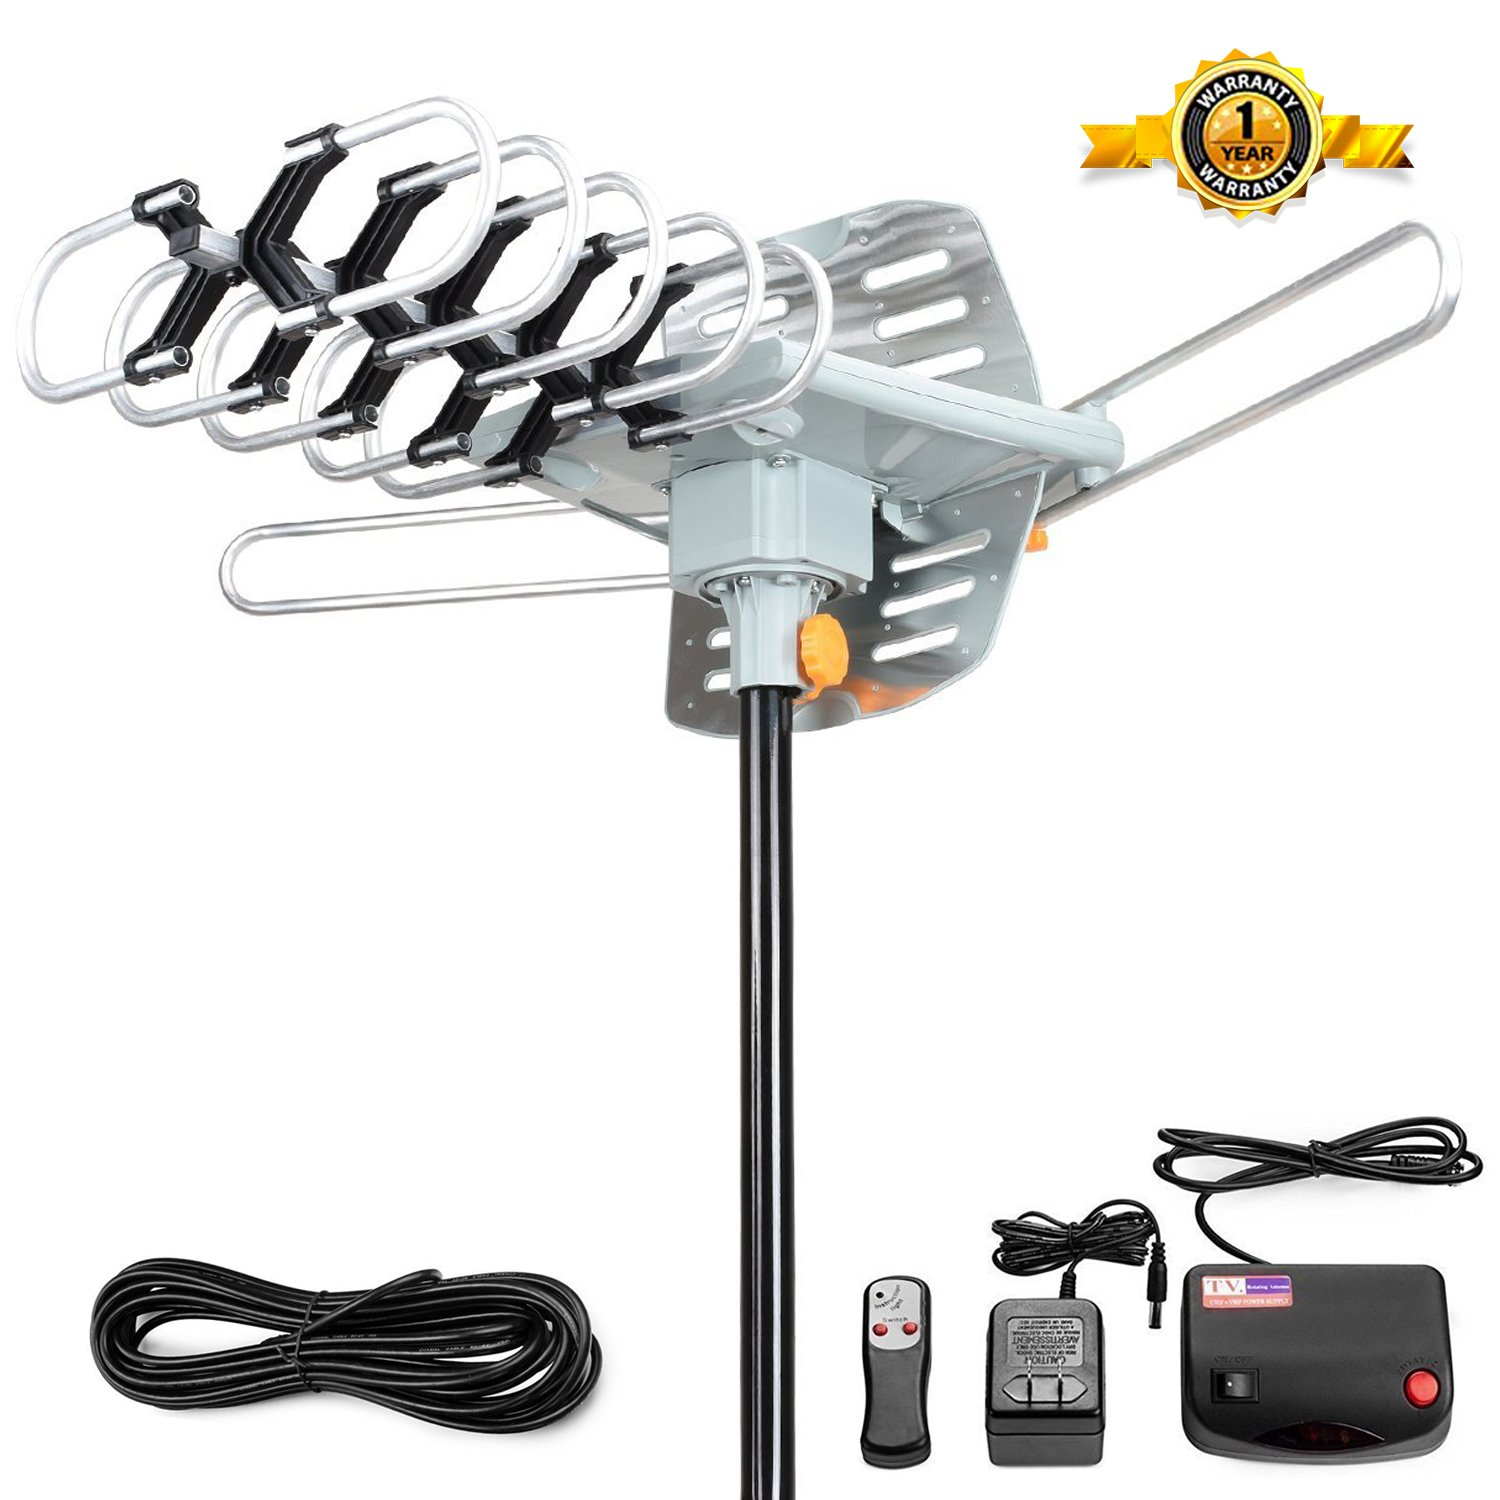 Outdoor Amplified HDTV Antenna Digital TV Antenna 150 Miles 360° Degree Rotation HD Digital Outdoor Indoor HDTV Antenna with Remote controller by Ailuki